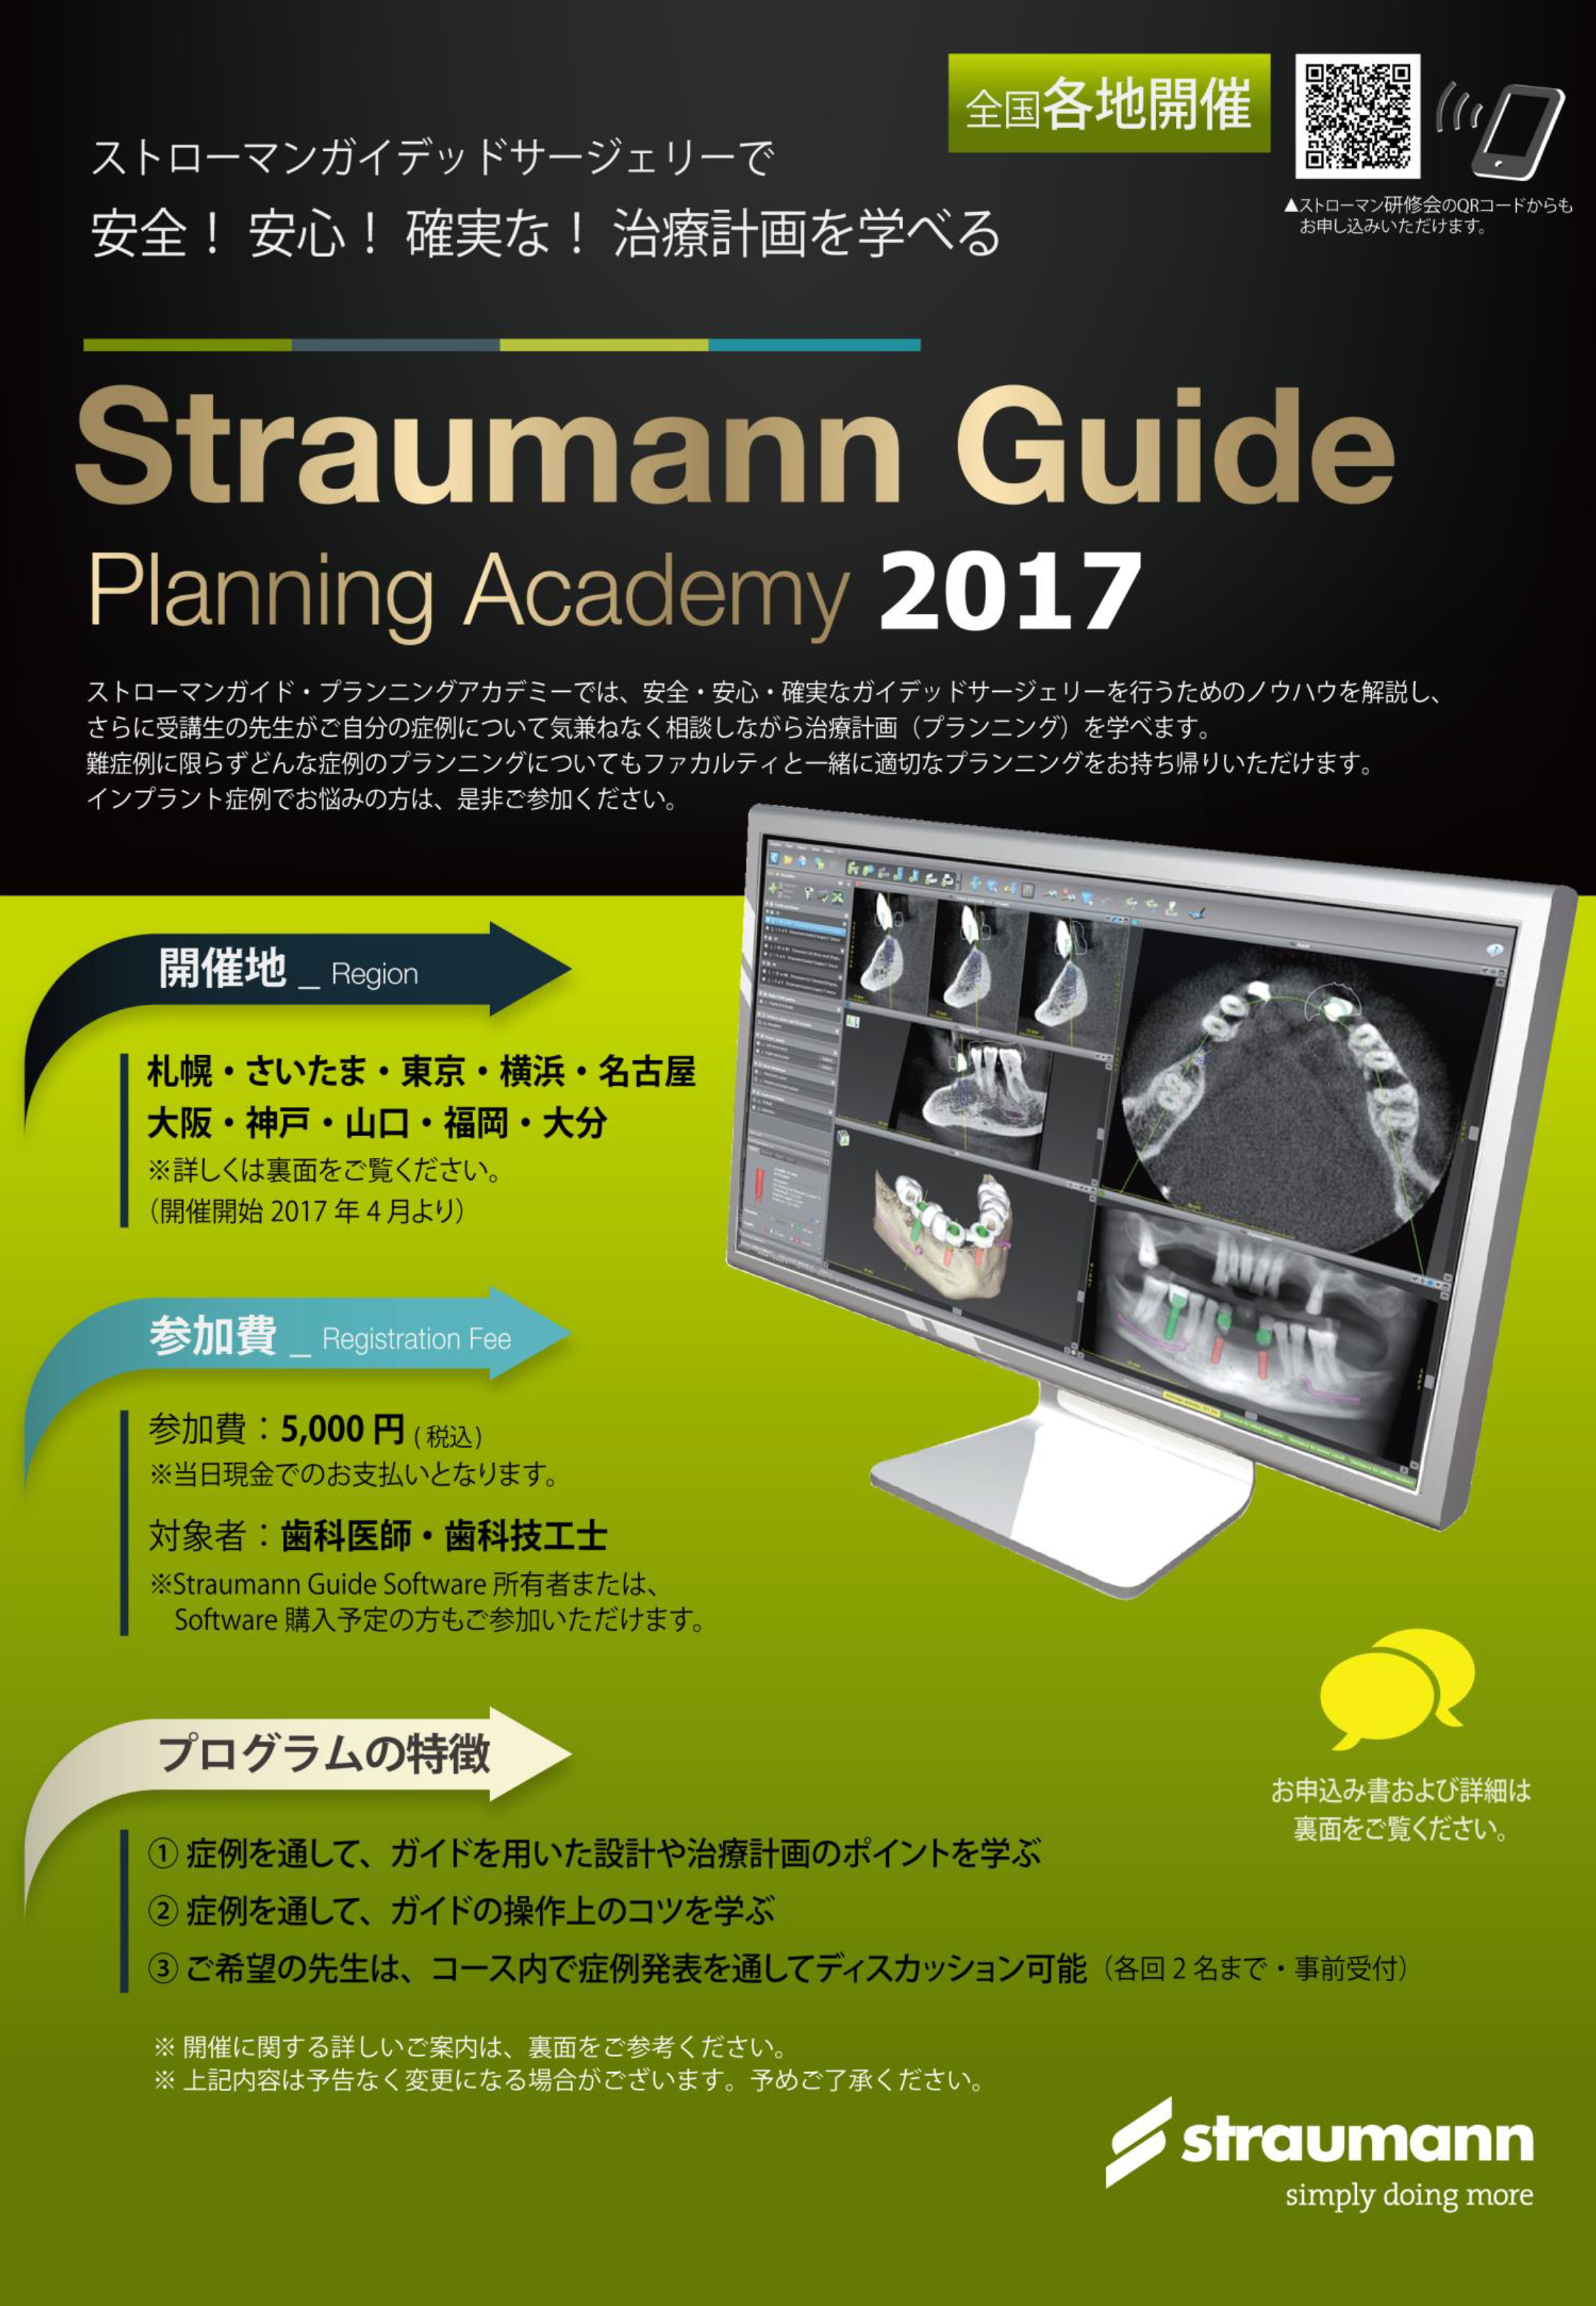 Straumann Guide Planning Academy 2017(福岡)